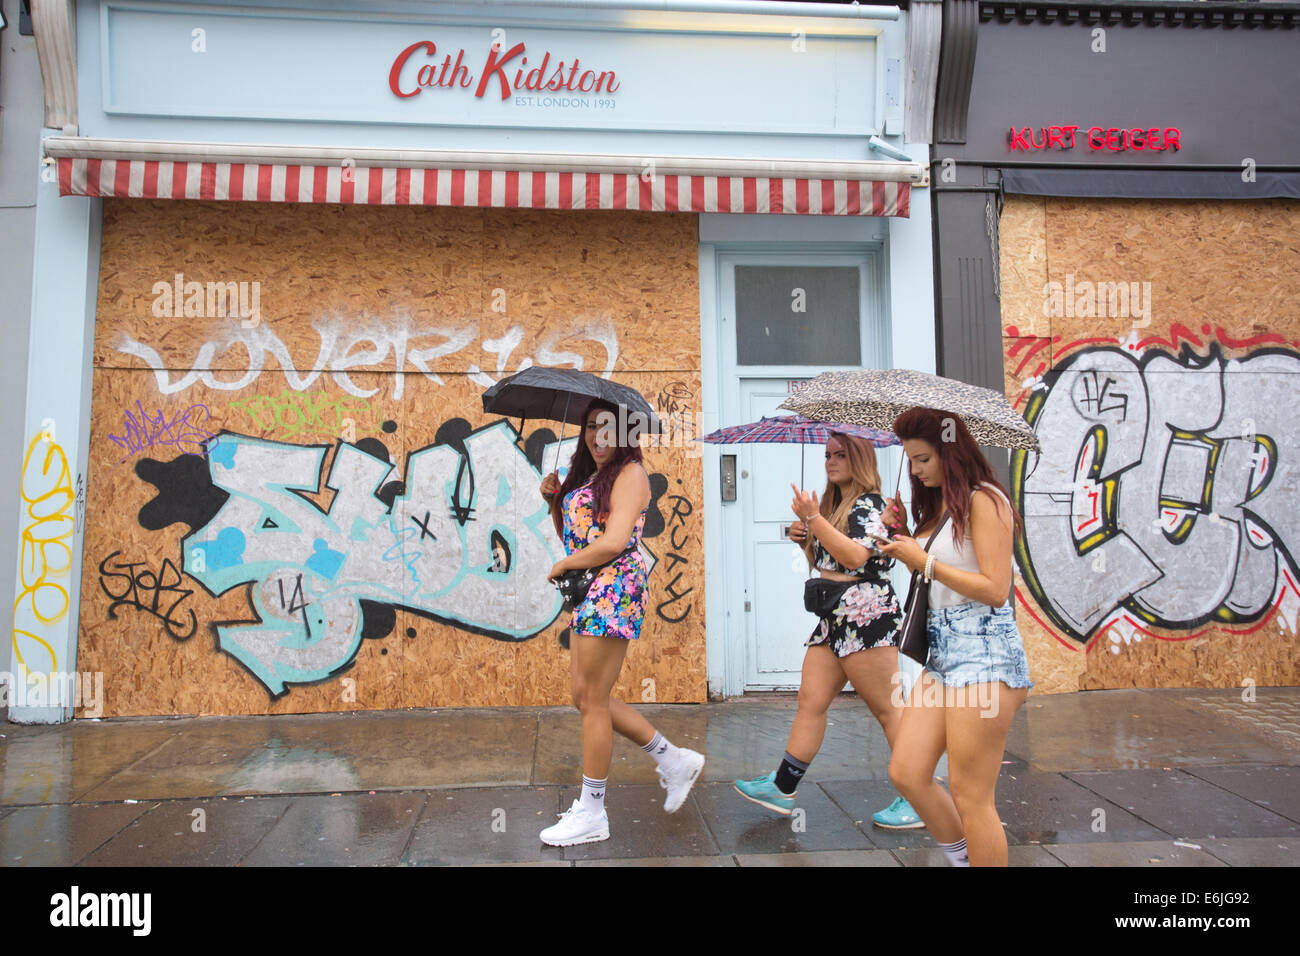 London, UK. 25th Aug, 2014. Carnival goers on a wet August Bank Holiday in the rain at The Notting Hill Carnival - Stock Image